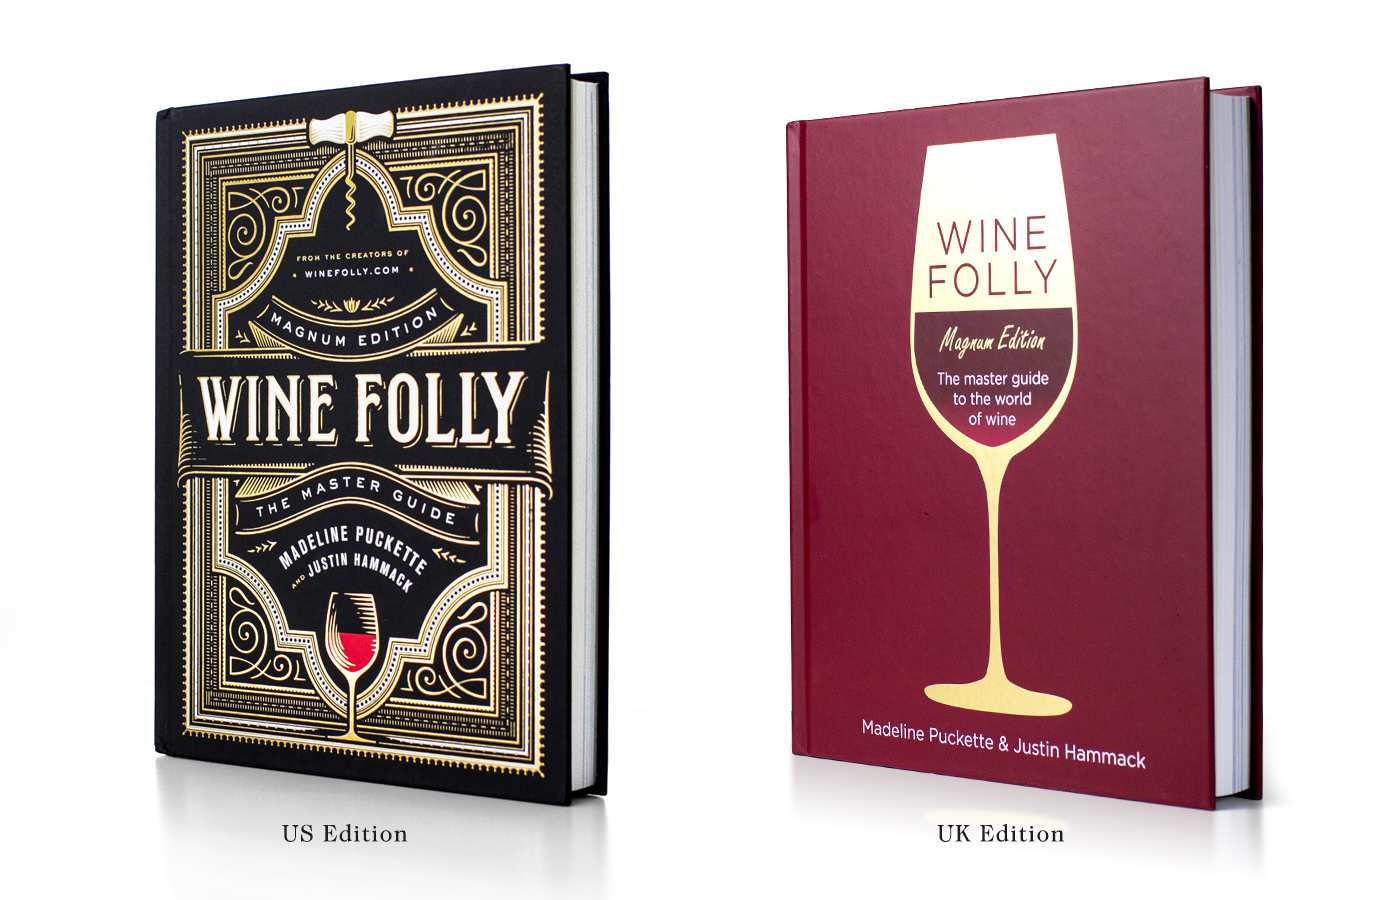 Us and UK versions of the Wine Folly Magnum Edition book